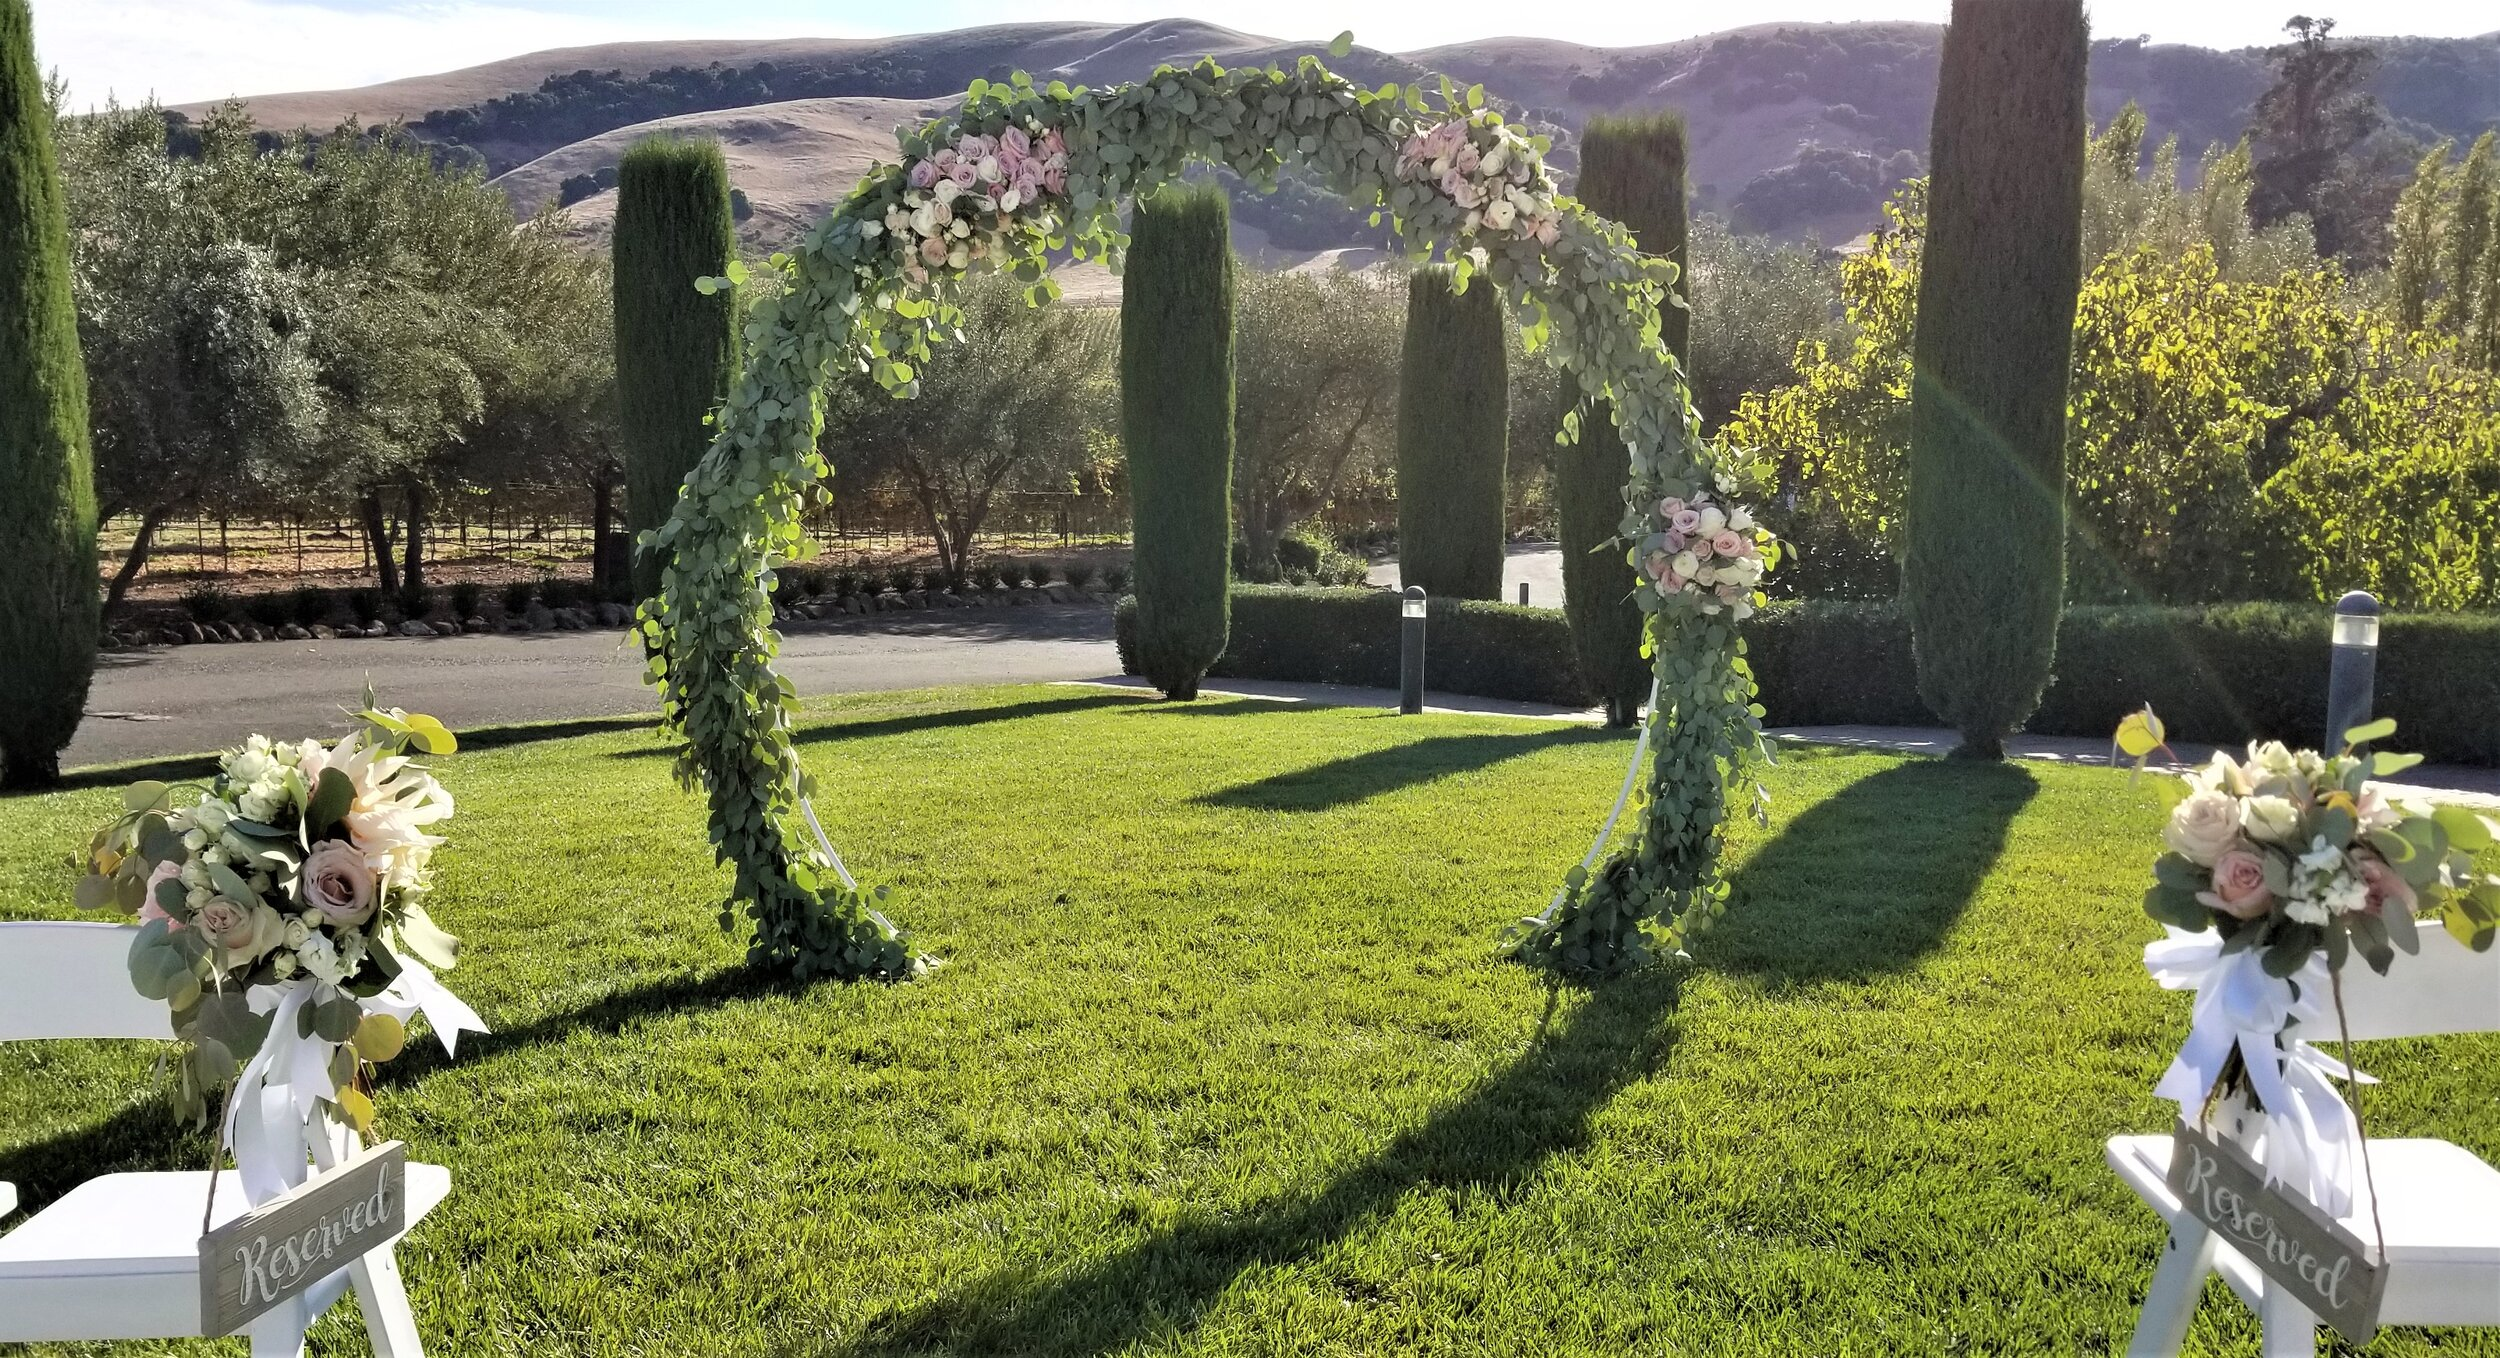 Circular Arch, Green garland with clusters of mauve, blush and white fresh flowers. Viansa Winery, Sonoma